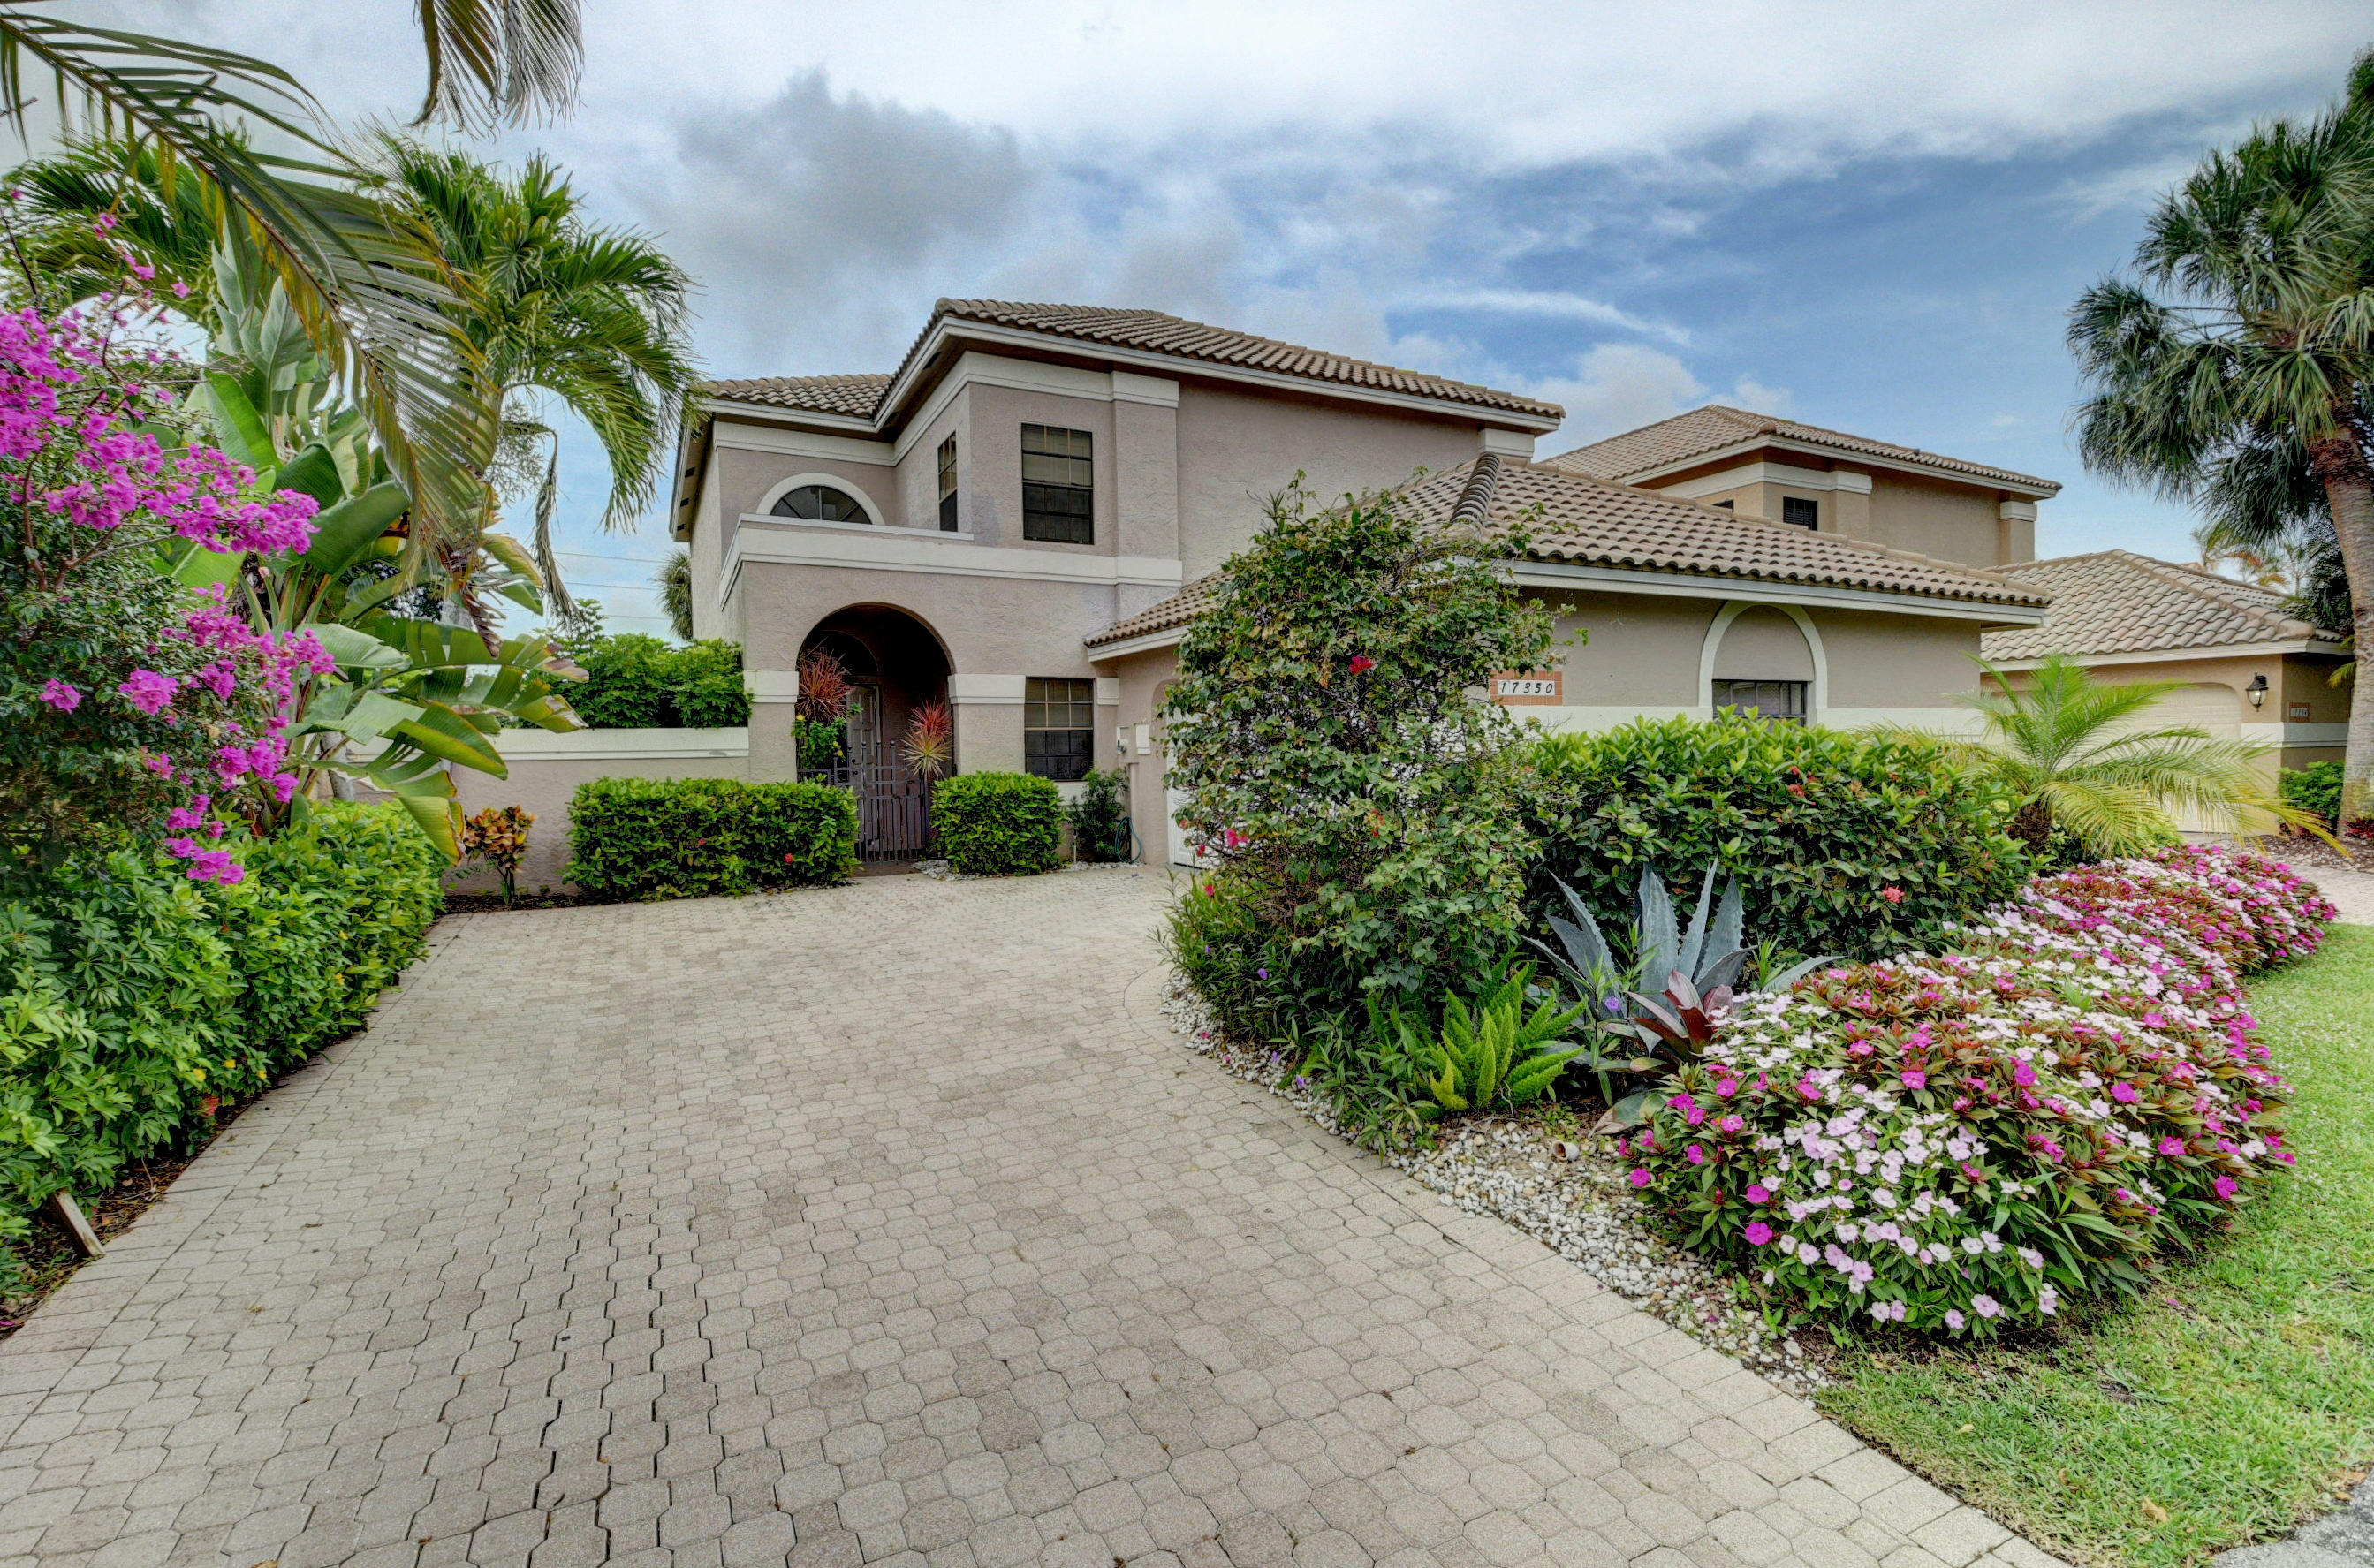 Super Golf View with Master Bedroom on Ground Floor. Lots of Natural Light. Country French Feeling. Newer Roof (2012) and Newer A/C (2015). Please Note One Time Capital Assessment at Closing $1,000.00